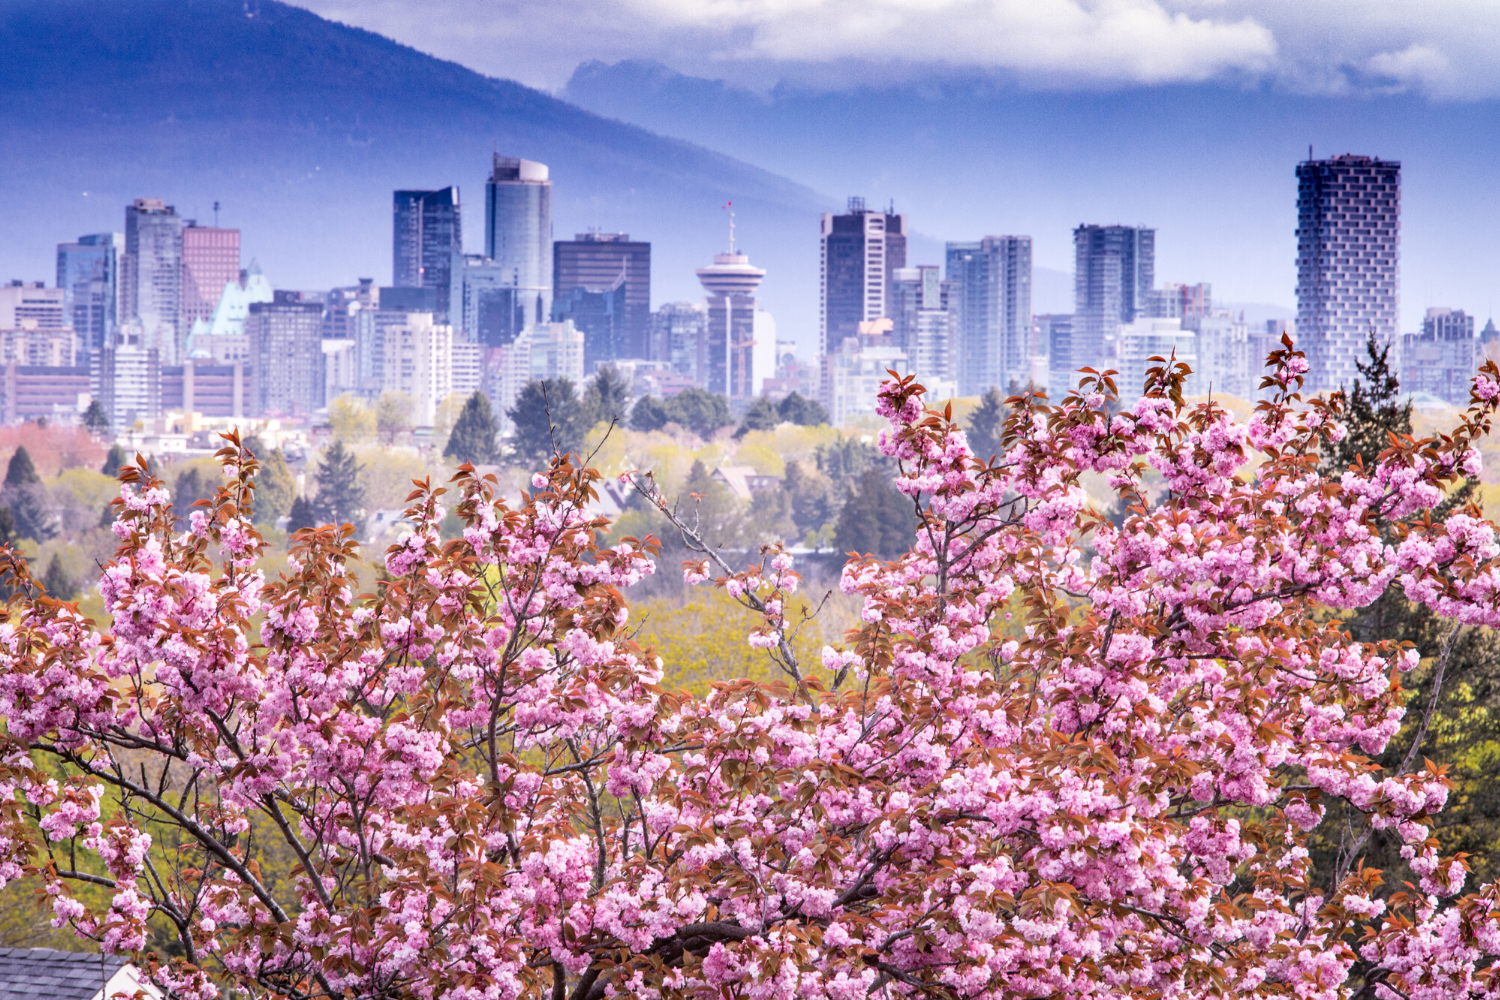 Cloudy mountains and city skyline over cherry blossom canopy.